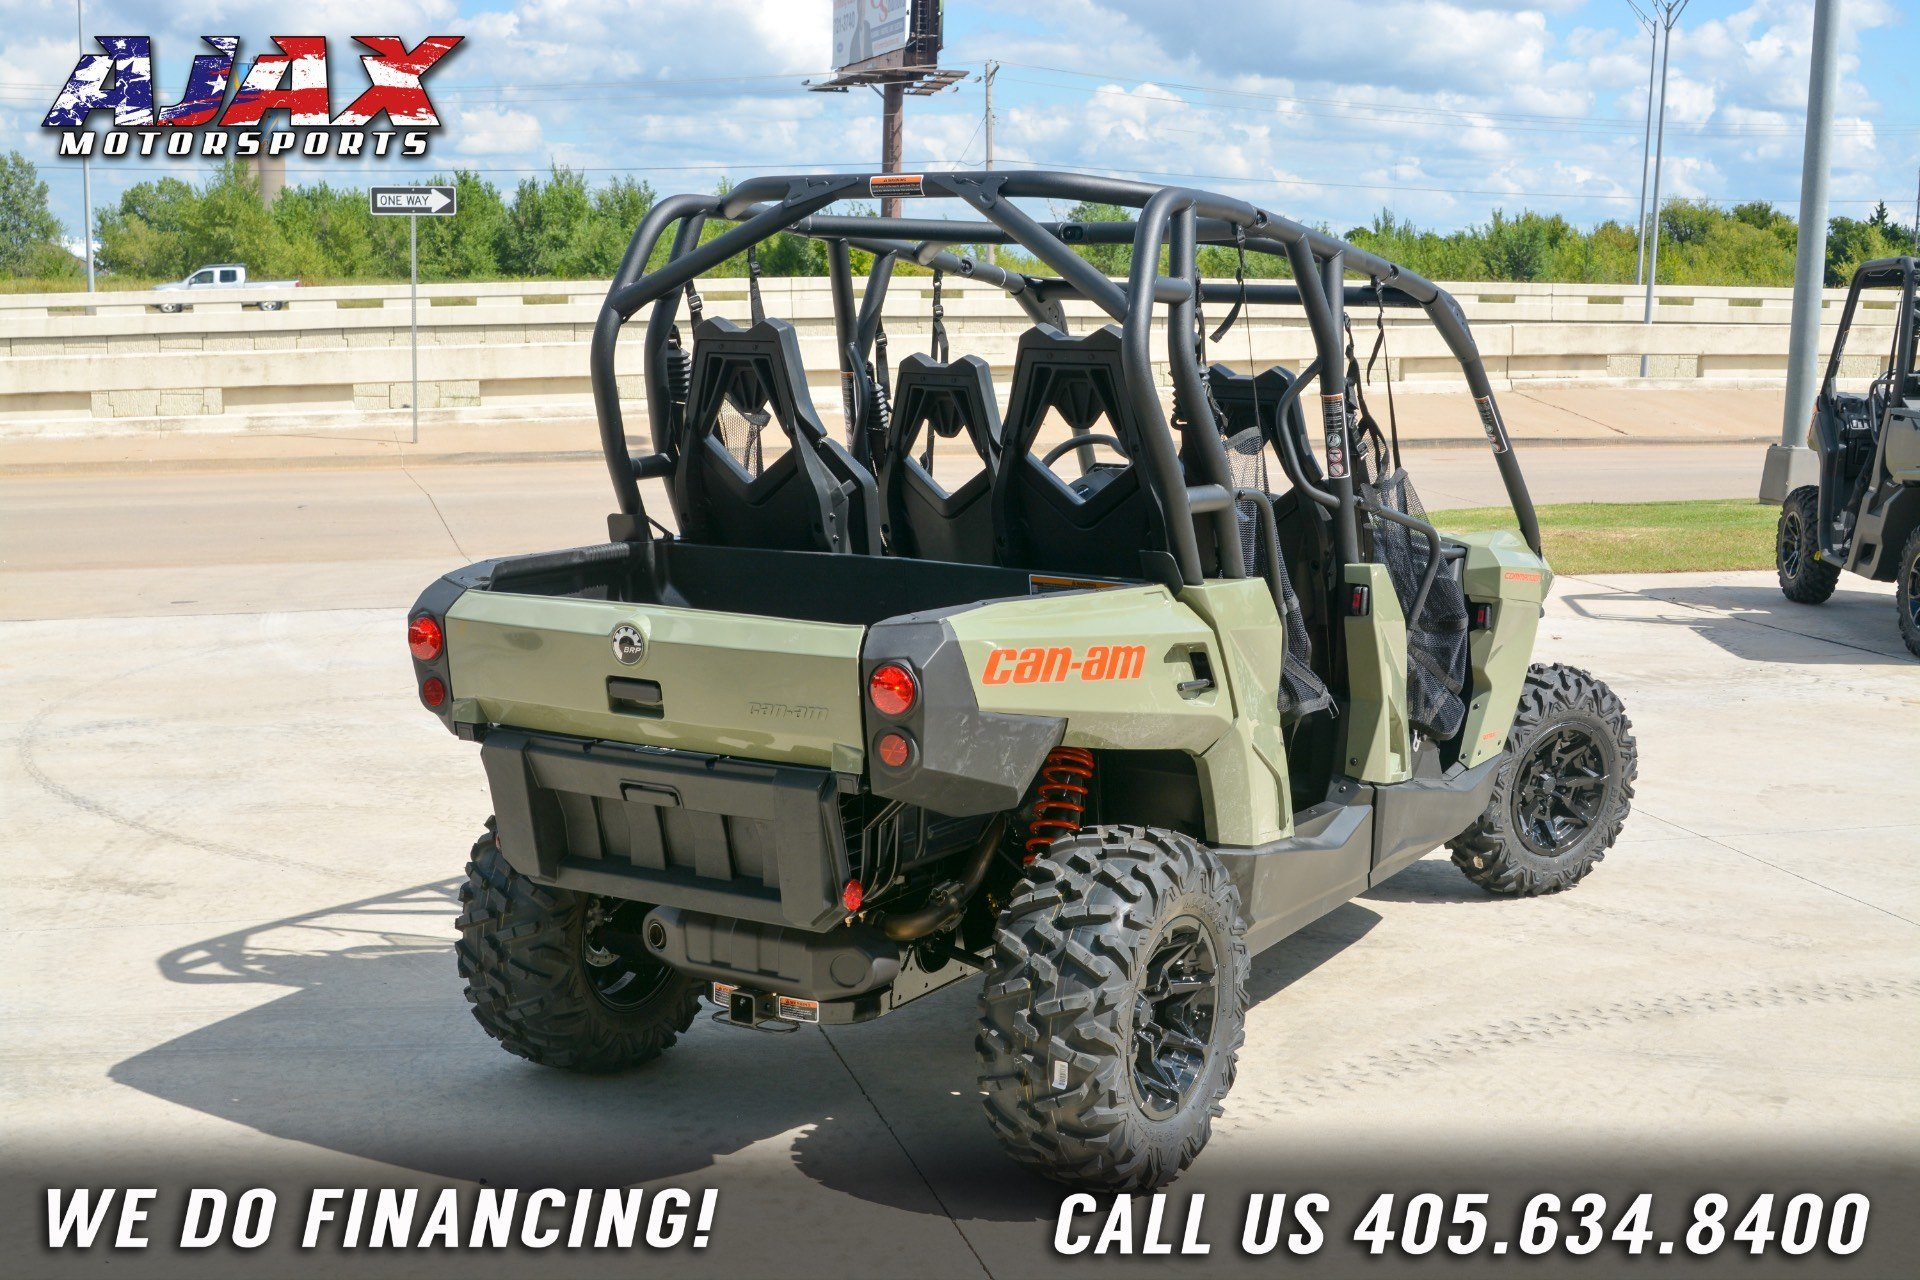 New 2019 Can Am Commander Max Dps 800r Utility Vehicles In Oklahoma Fuel Filter City